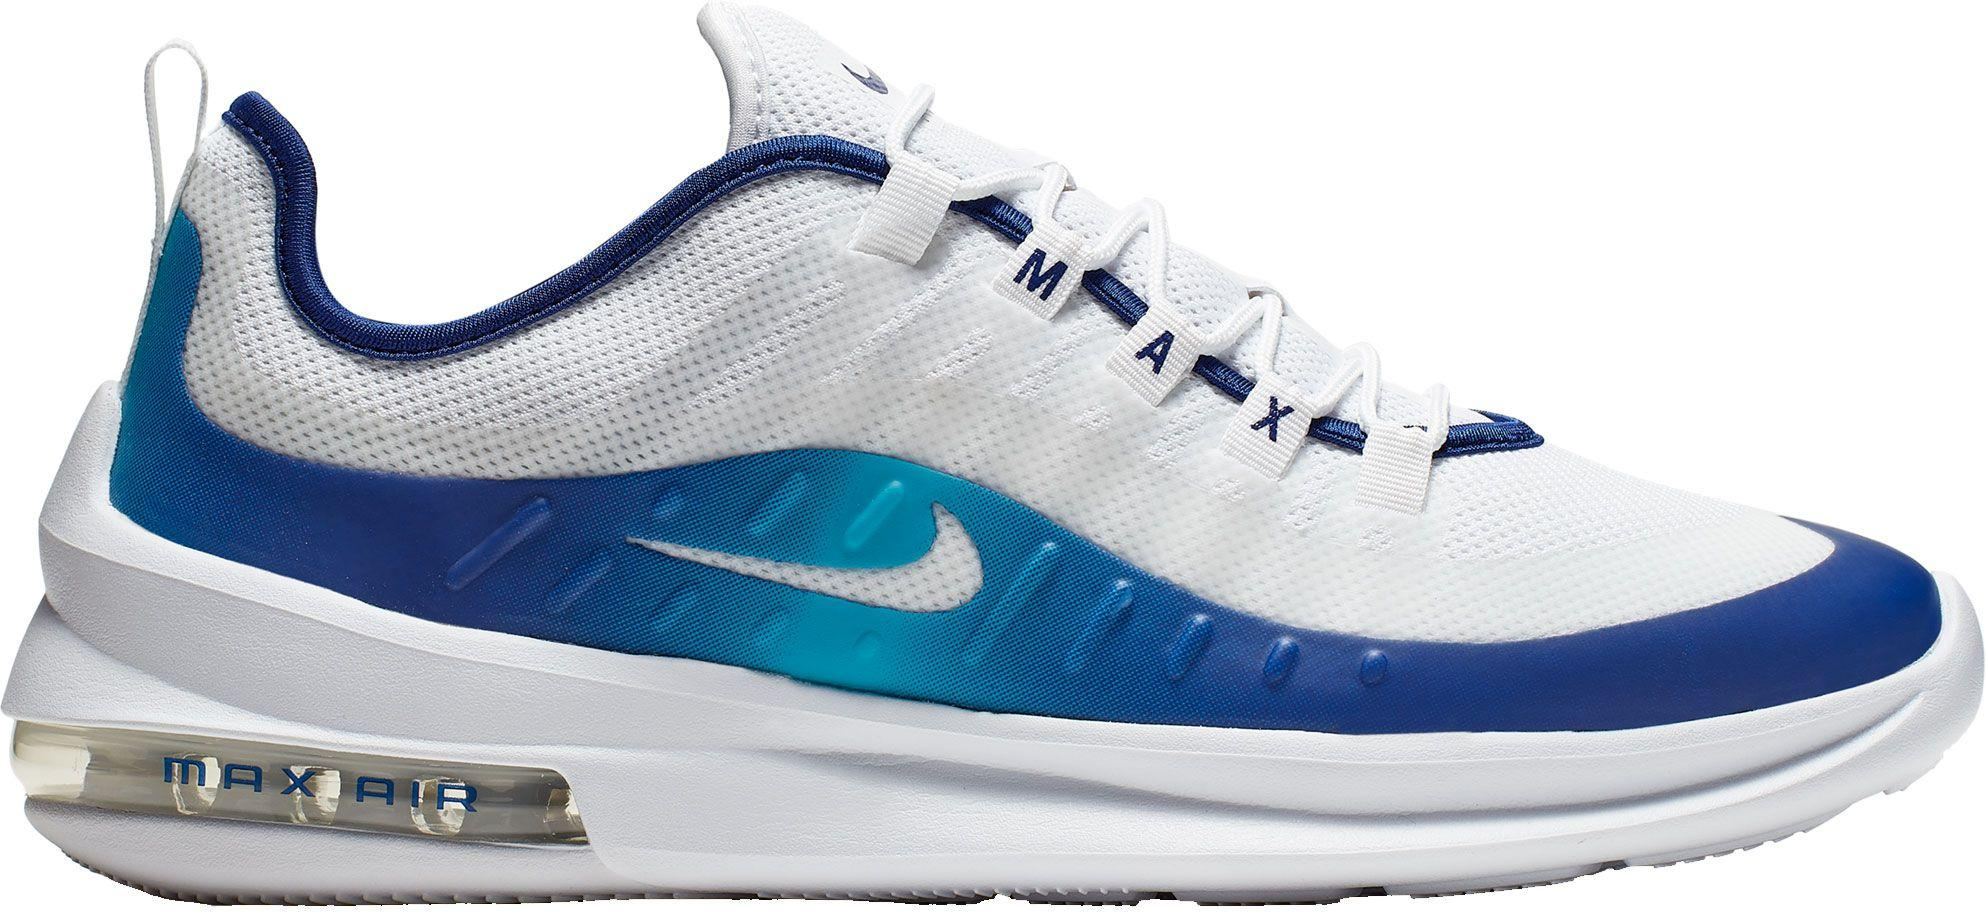 29ea3730dbe Nike Air Max Axis Premium Shoes in Blue for Men - Lyst